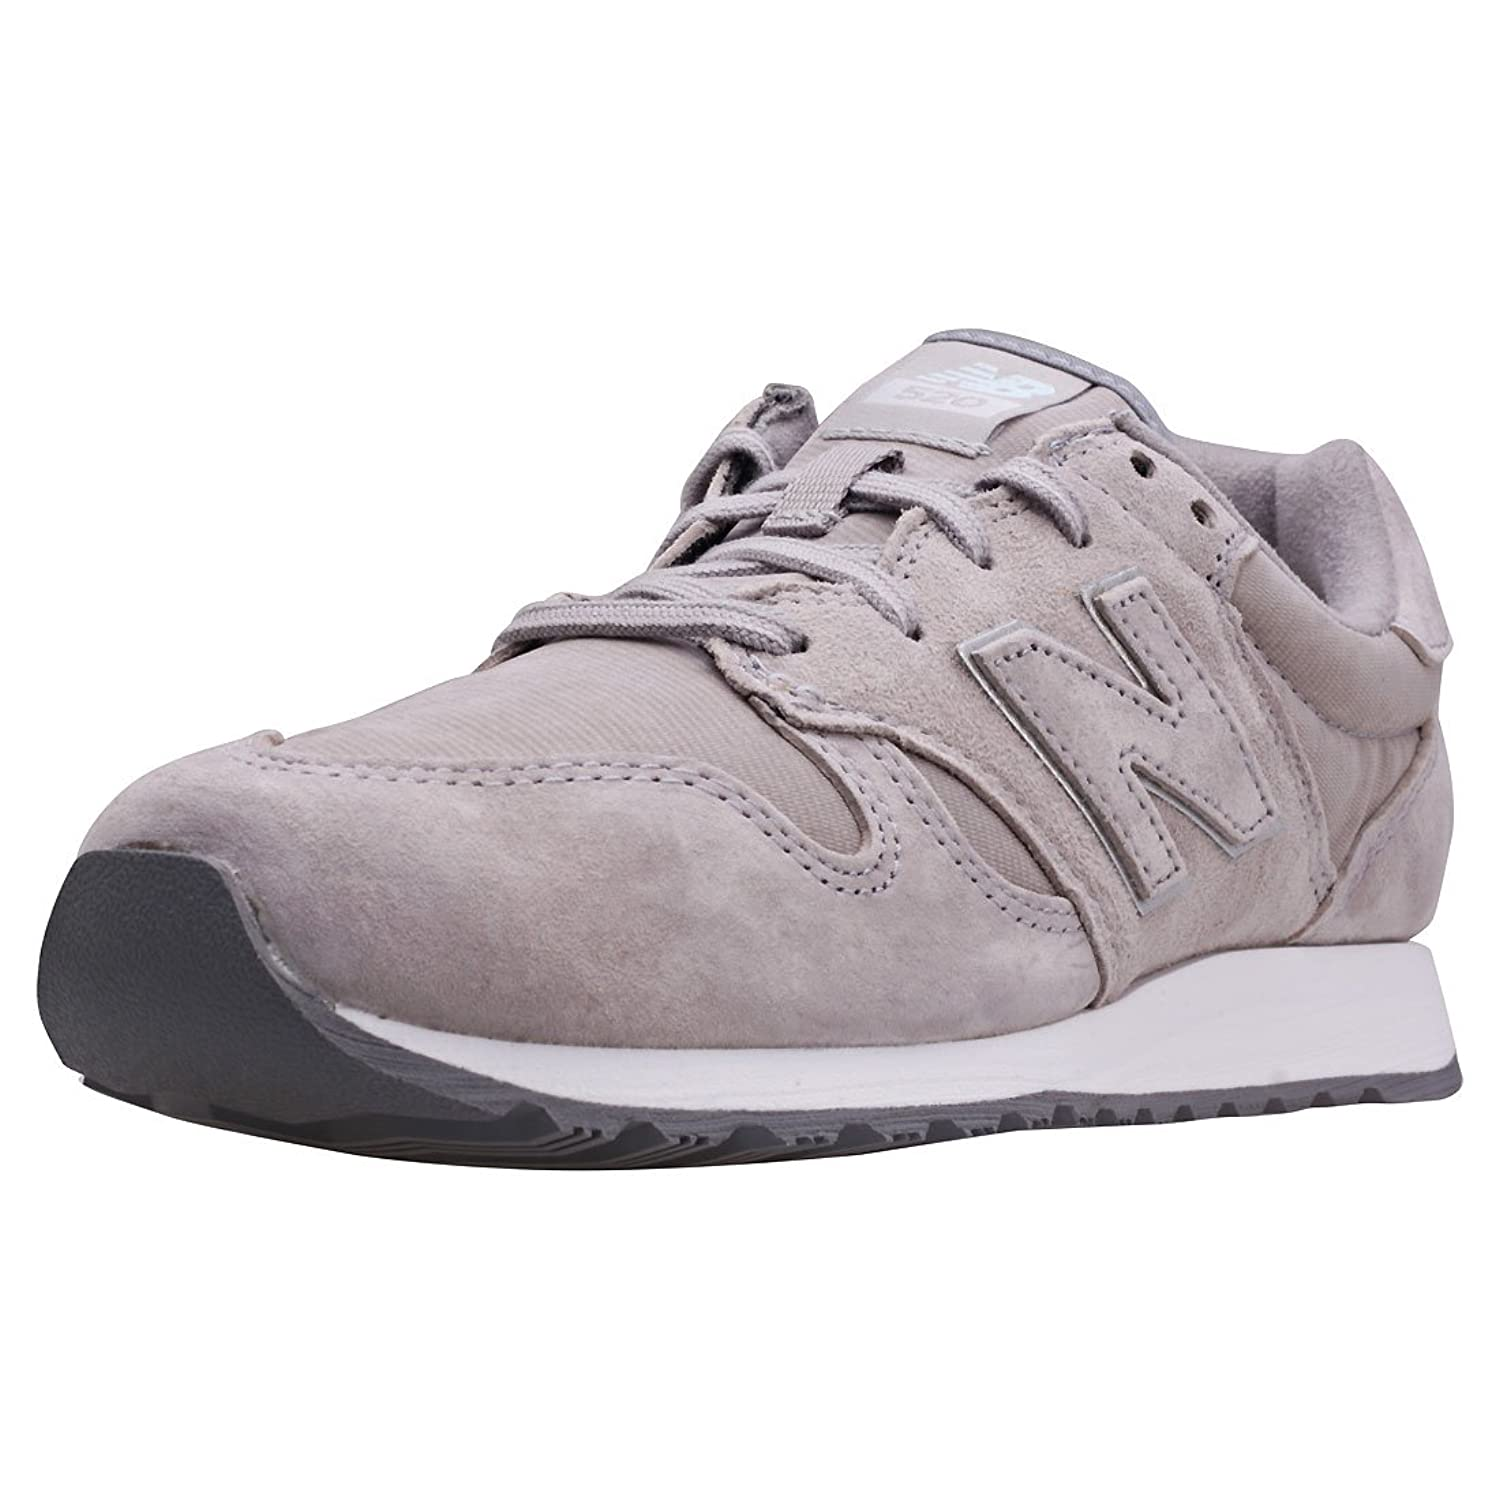 New Balance Wl520 Core Classic Womens Grey Suede & Textile Trainers